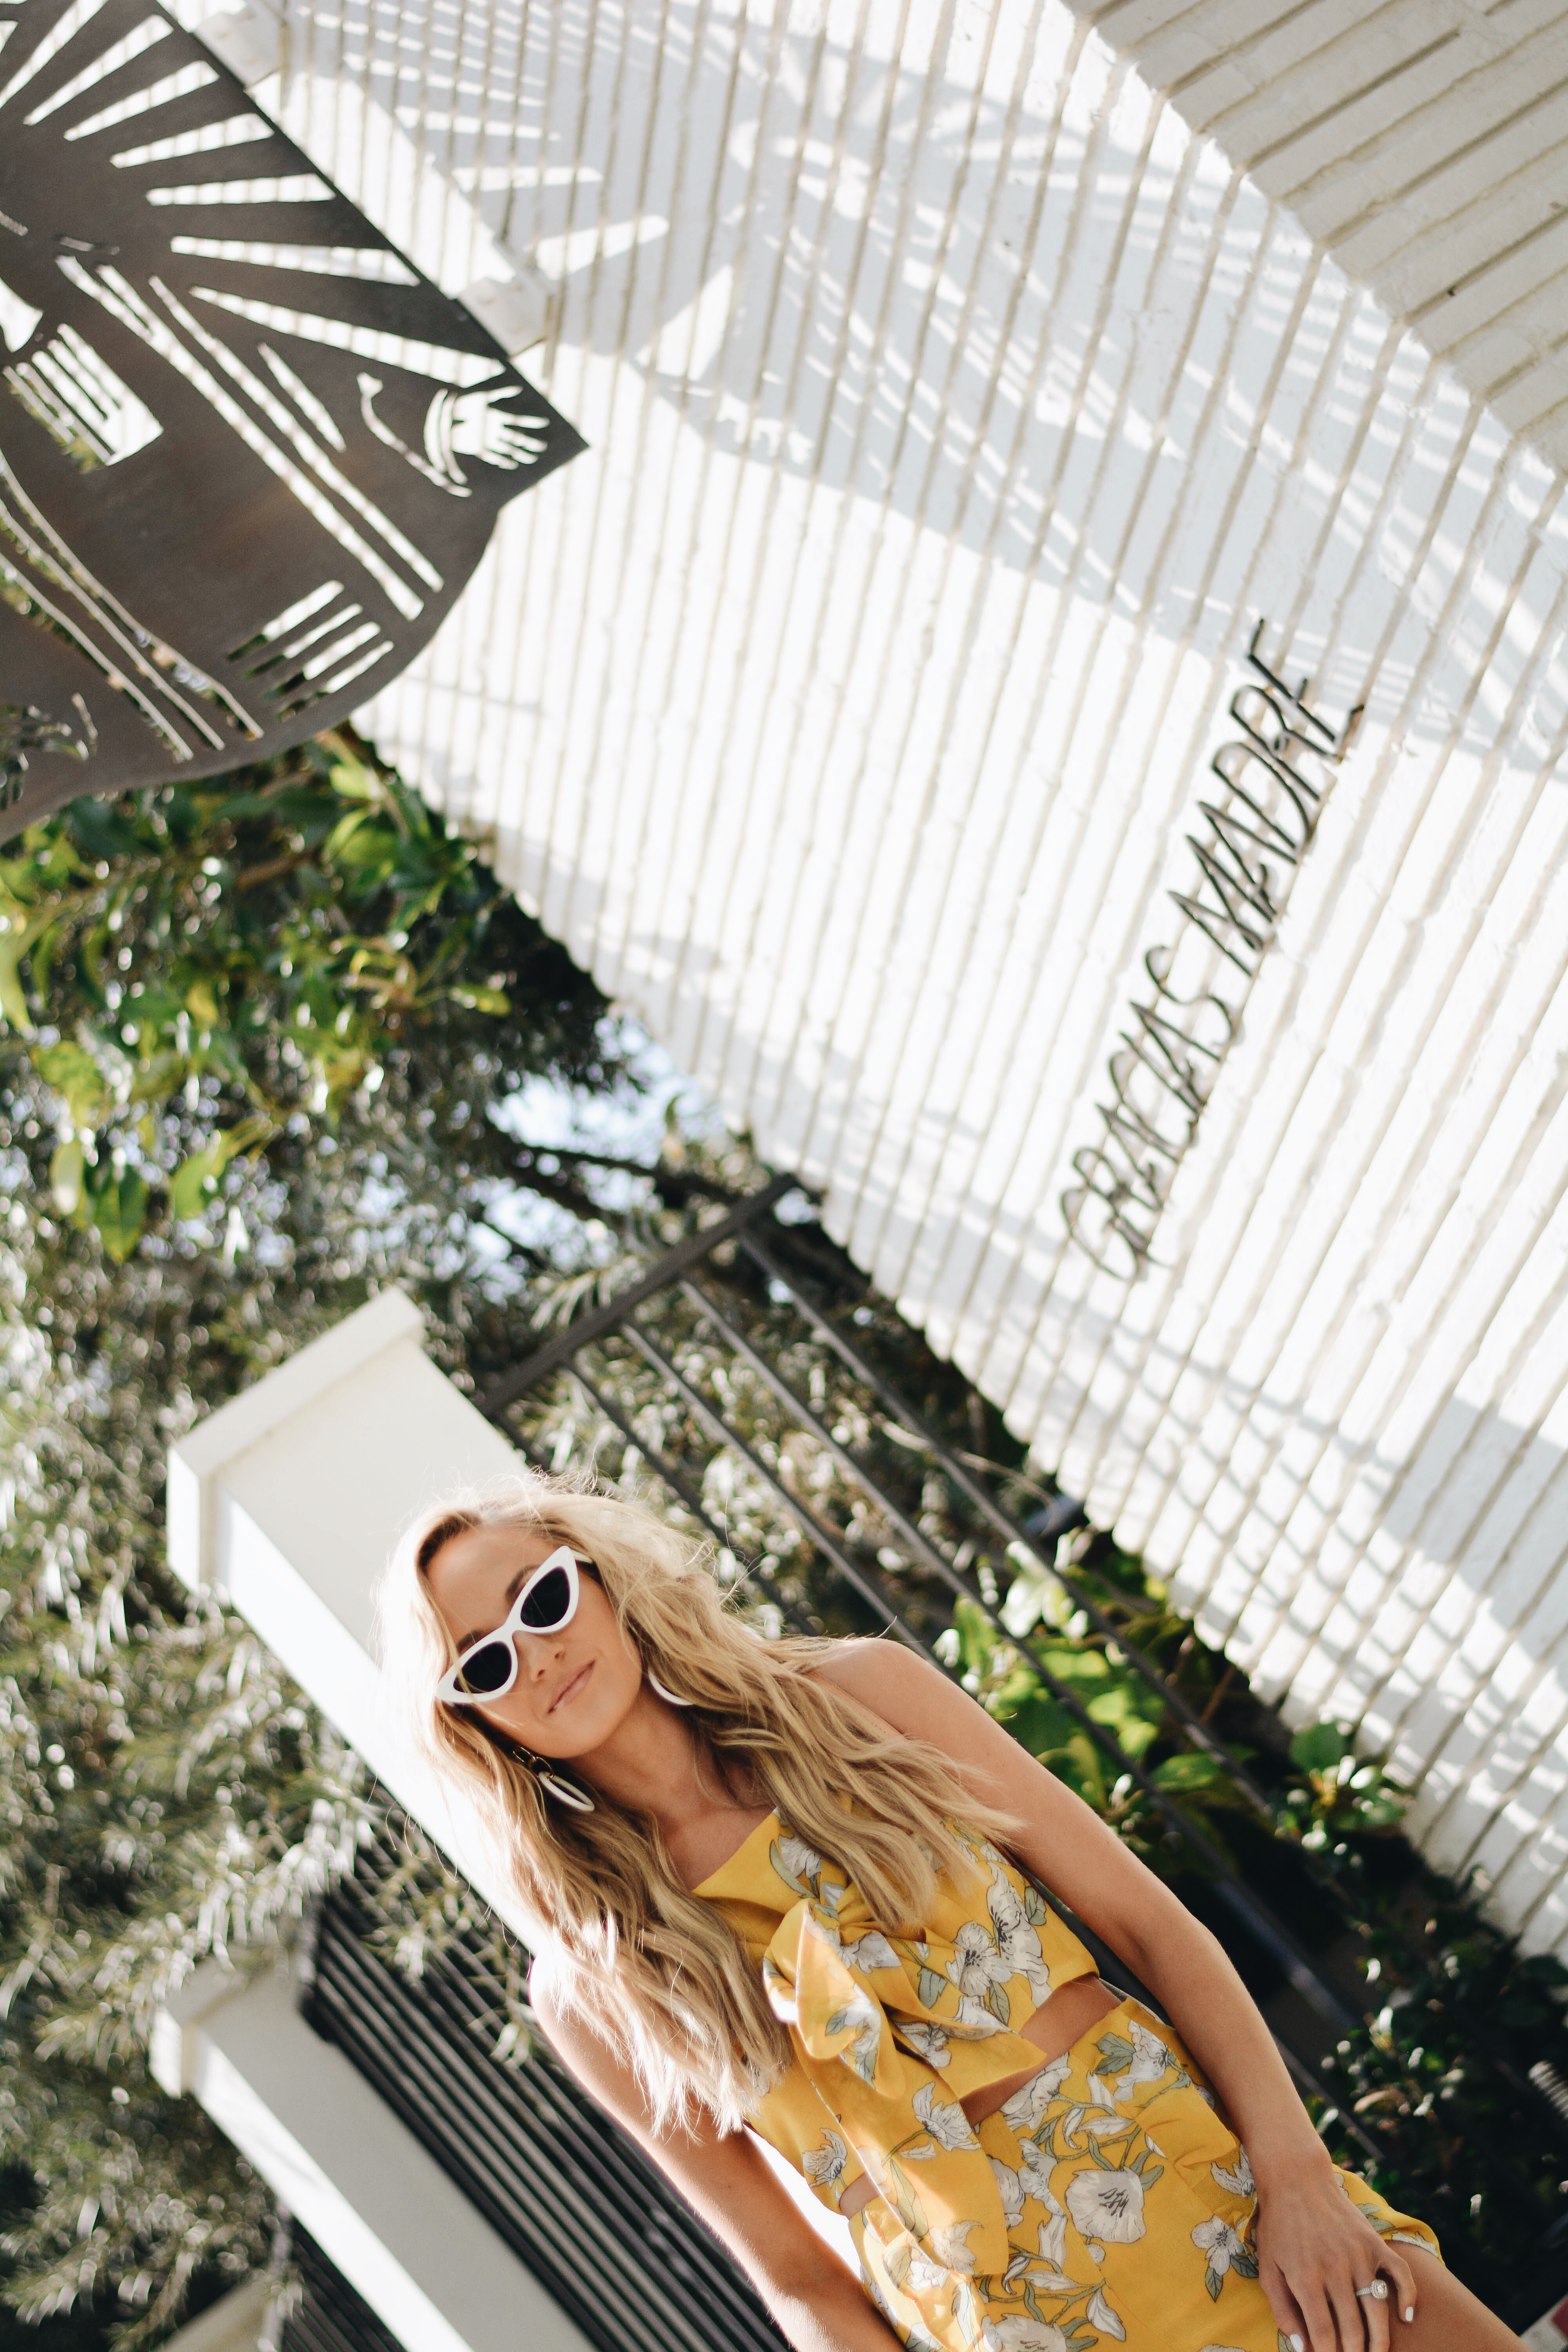 los_angeles_staycation_city_guide_nastia_liukin